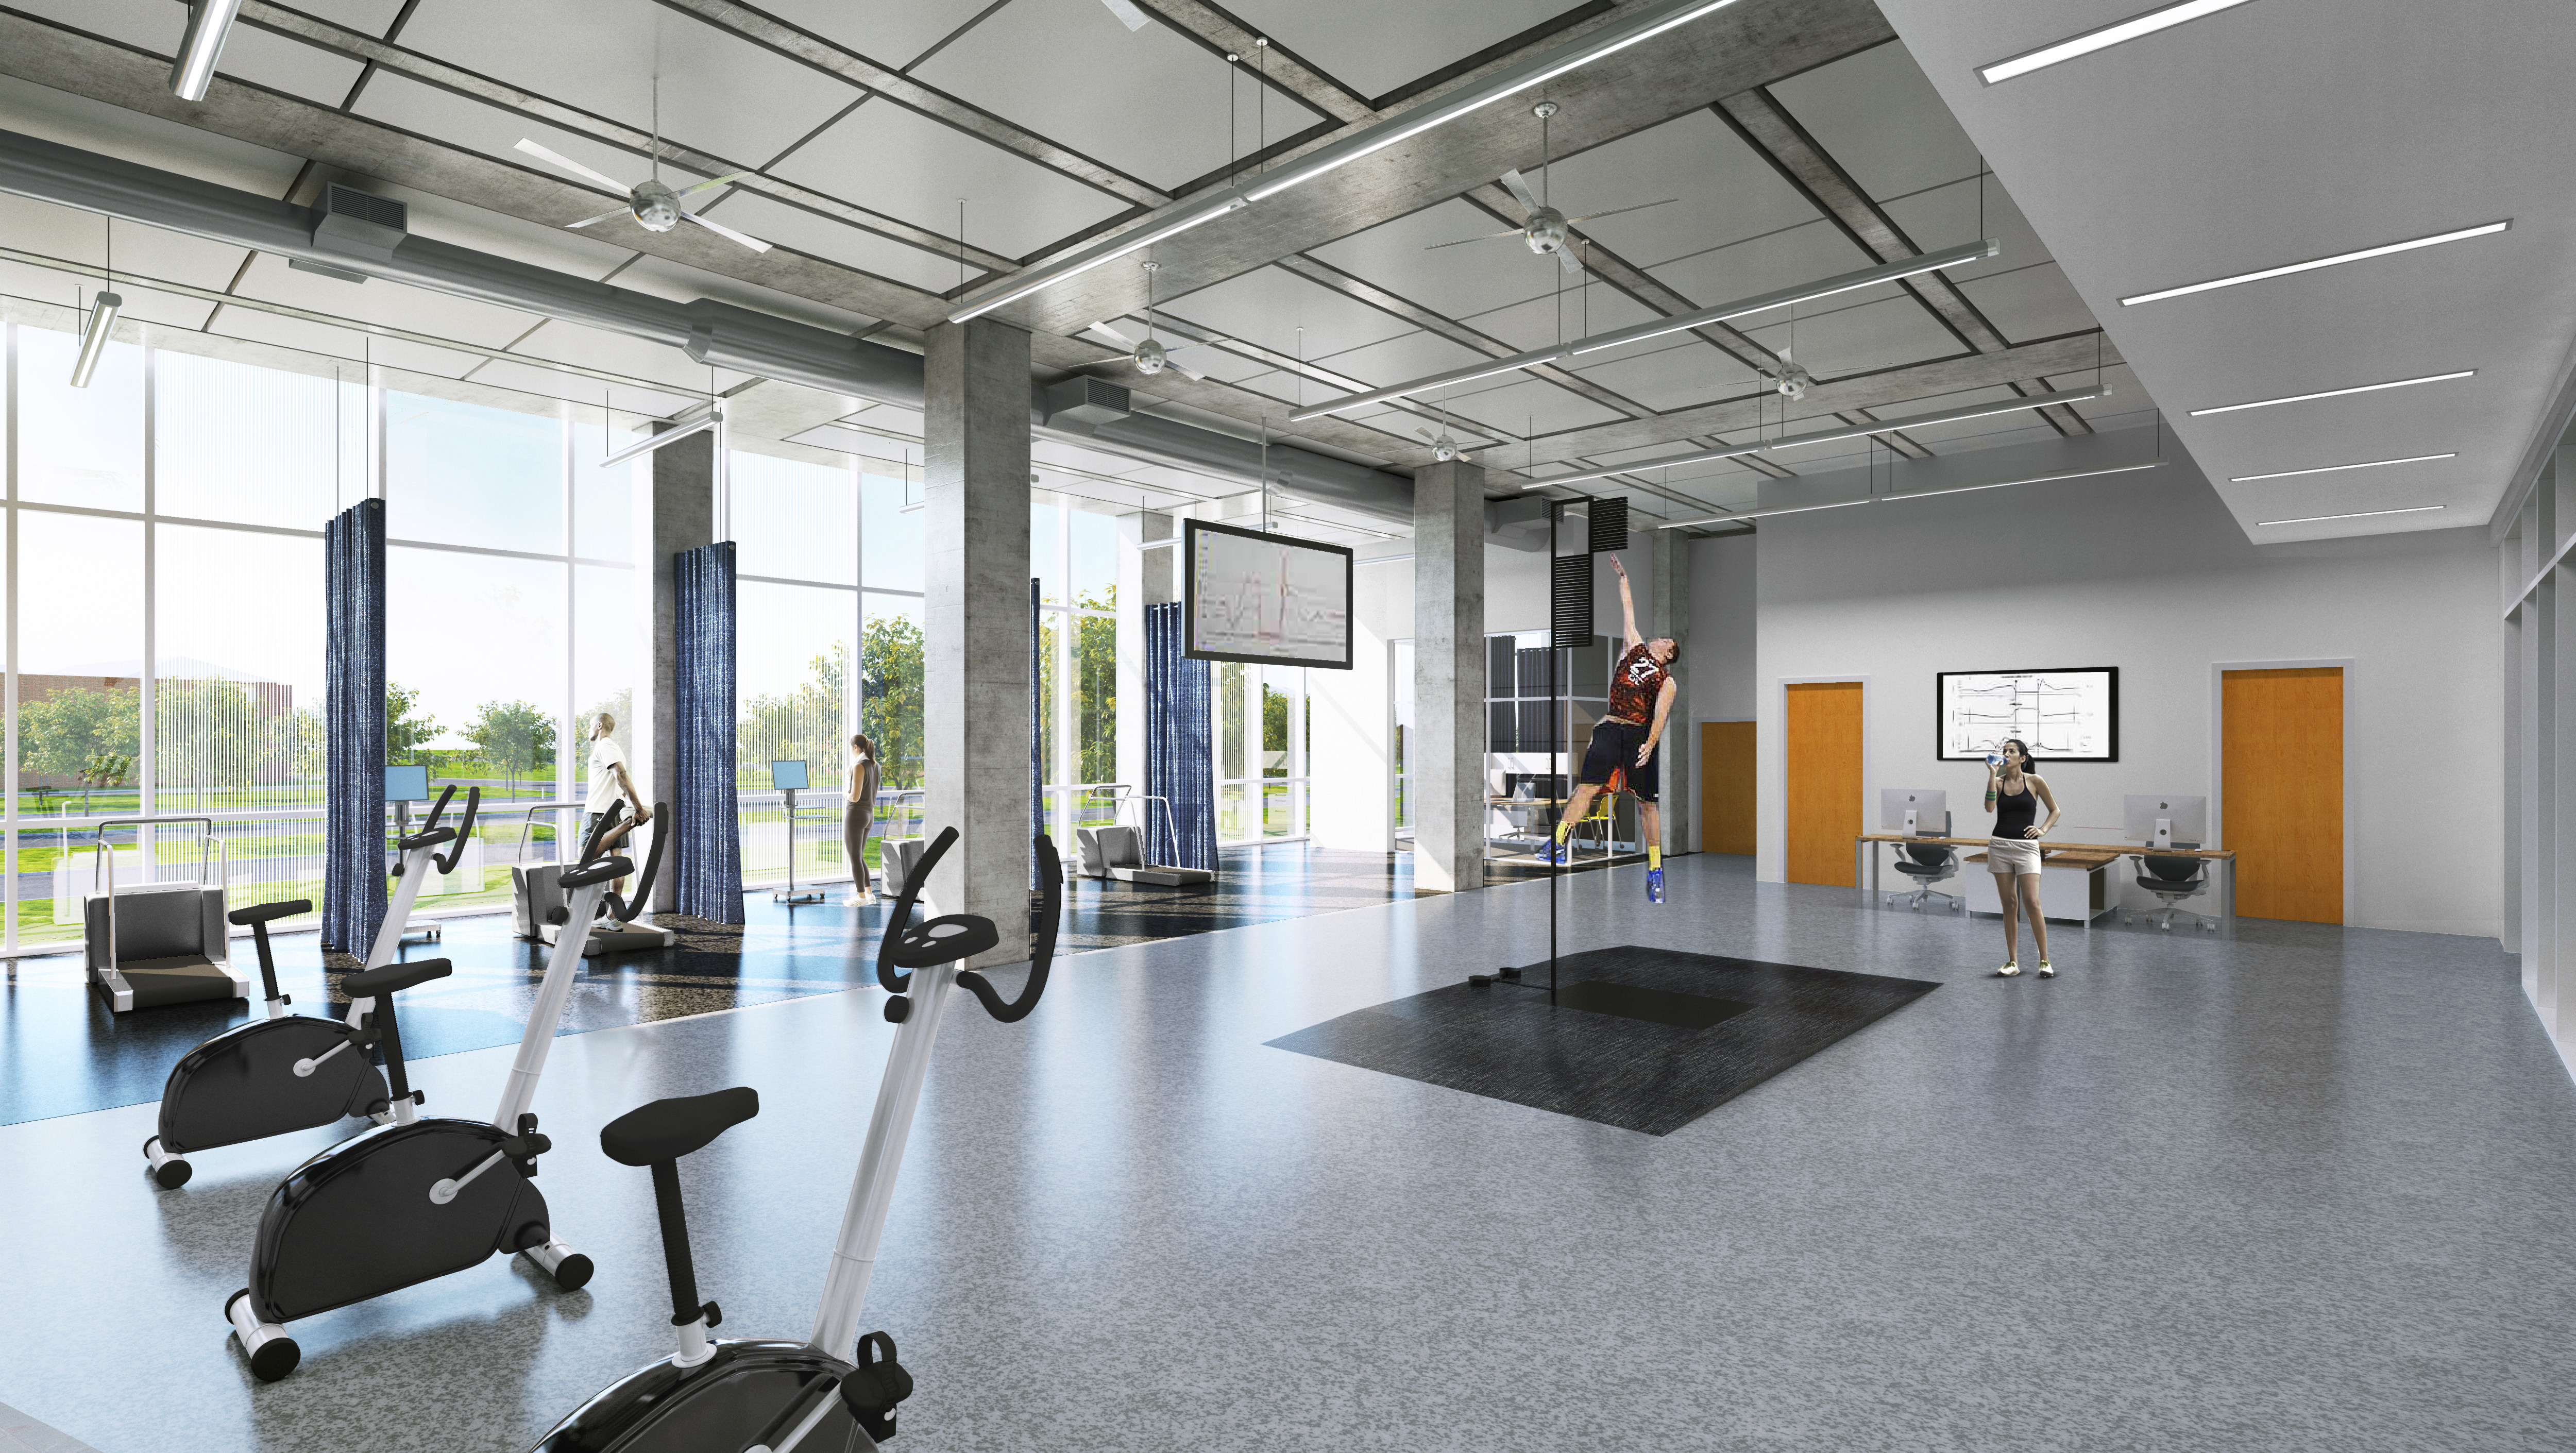 Texas A&M University Commerce, Nursing & Health Sciences Building – Health and Human Performance Lab: